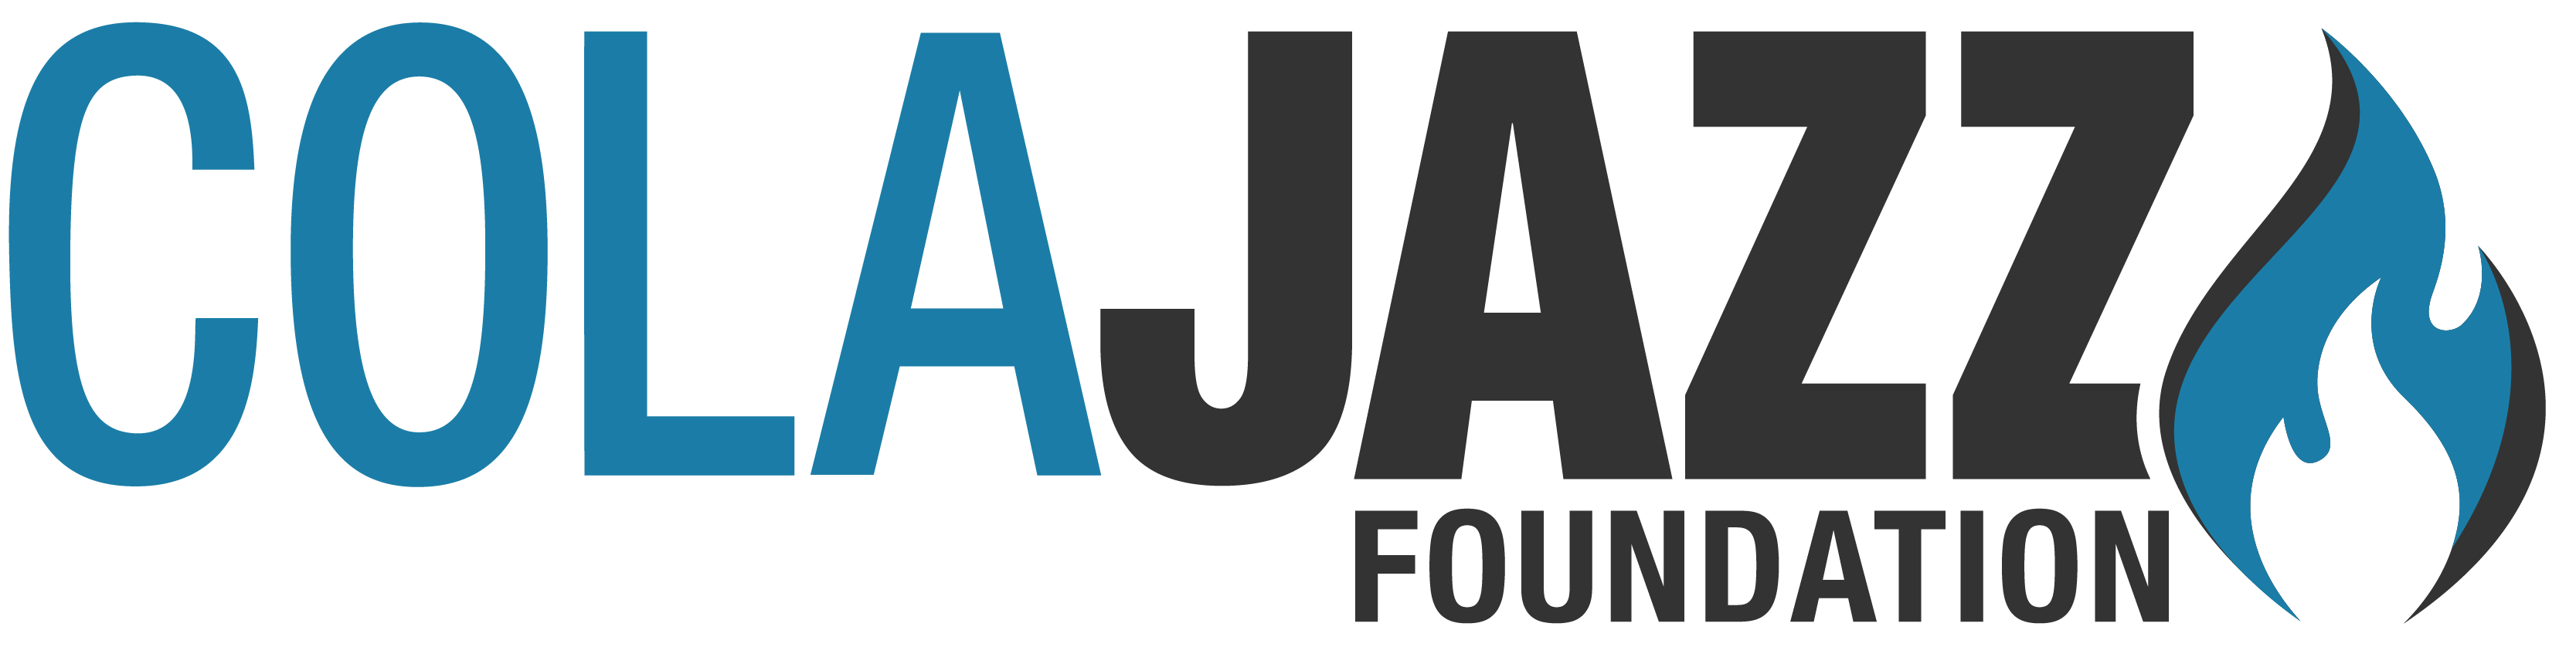 ColaJazz Foundation